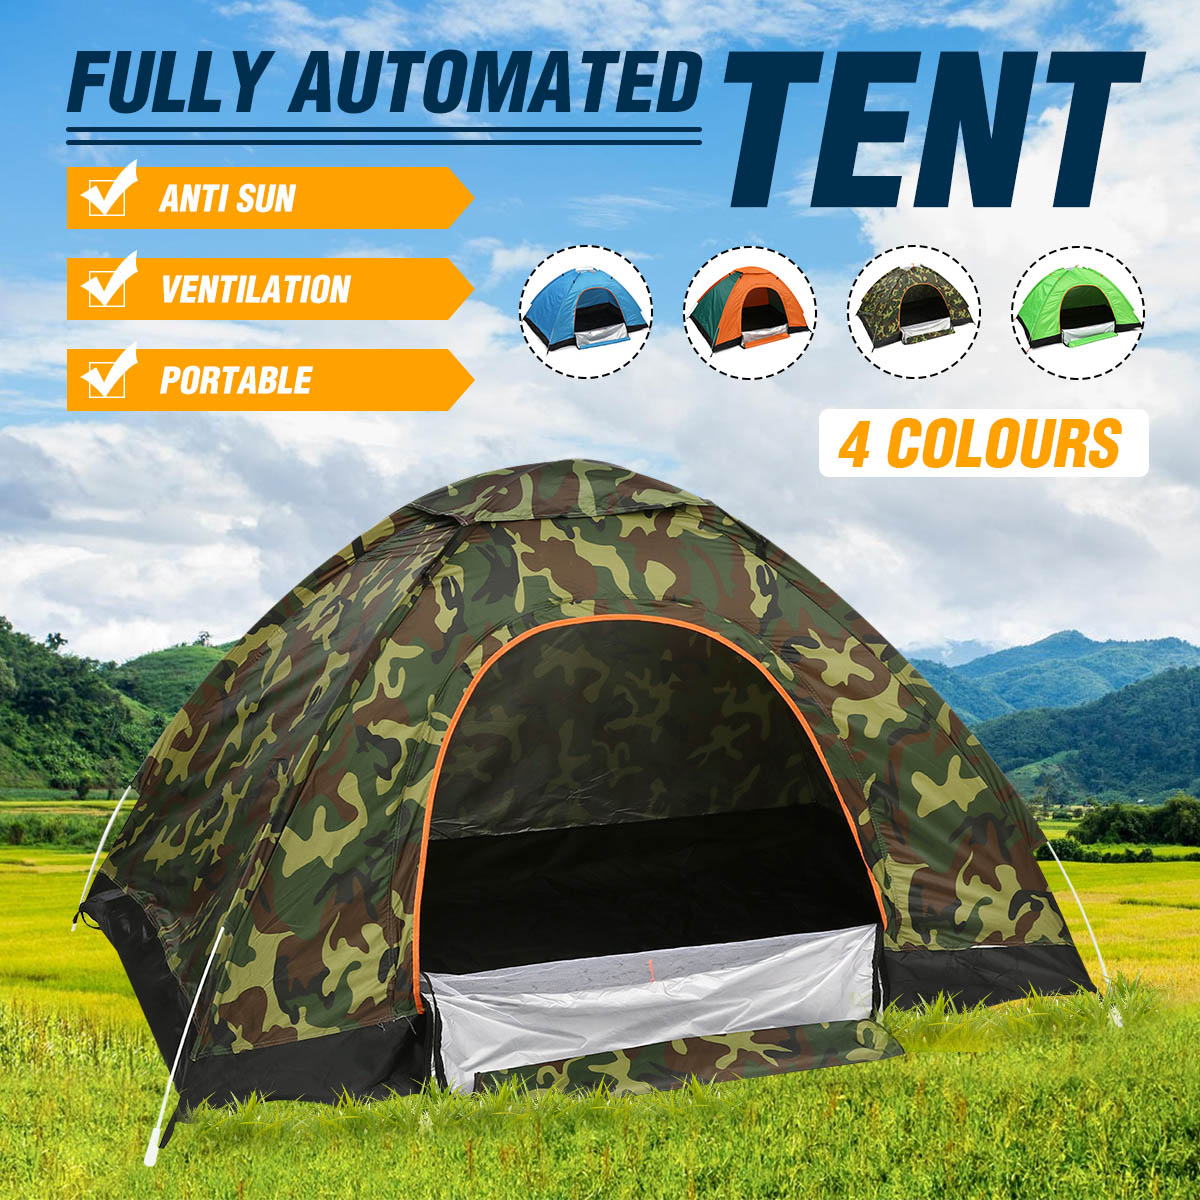 Portable Canopy Shelter Large Waterproof Sunshade Beach Hiking Green camouflage